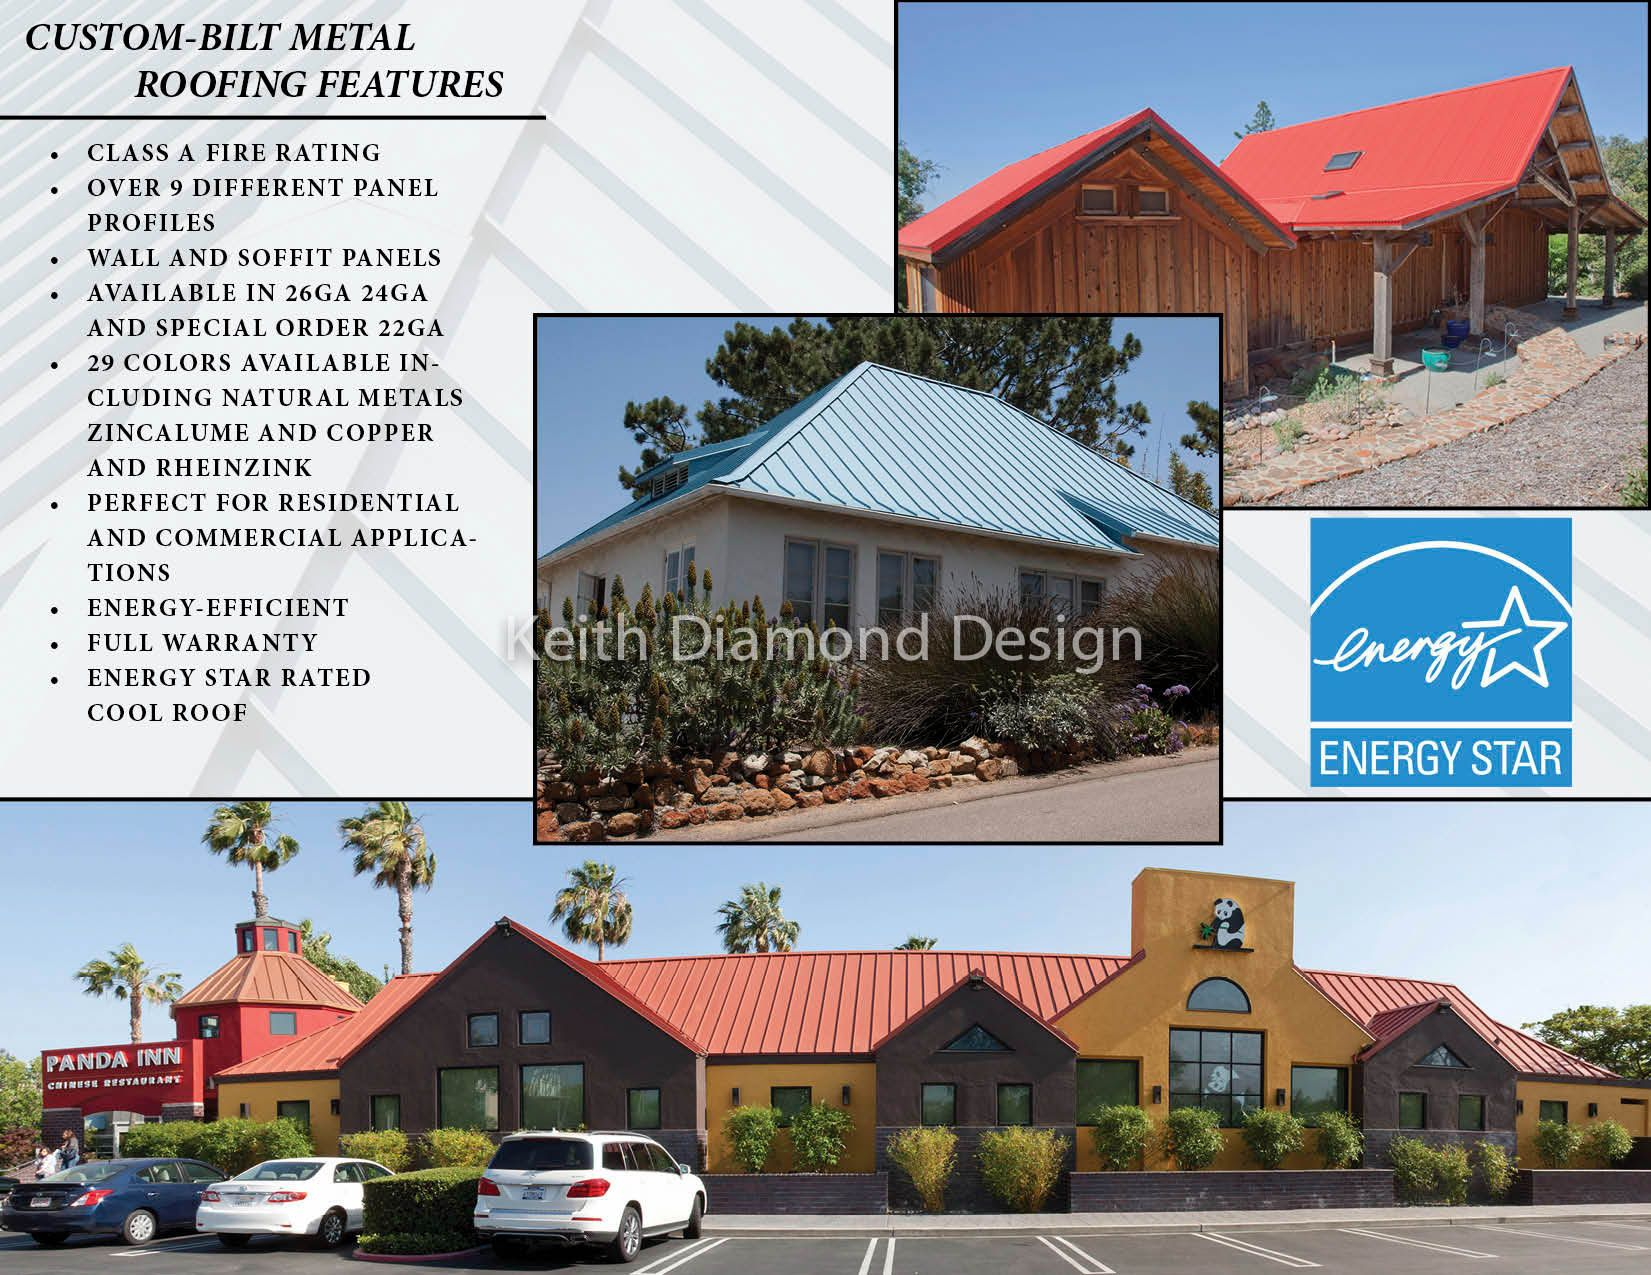 This Is Side Two Of A Trifold Brochure That I Created To Help Custom Bilt Metals Promote Their Fire Rated Metal Roofi Metal Roof Roofing House Styles